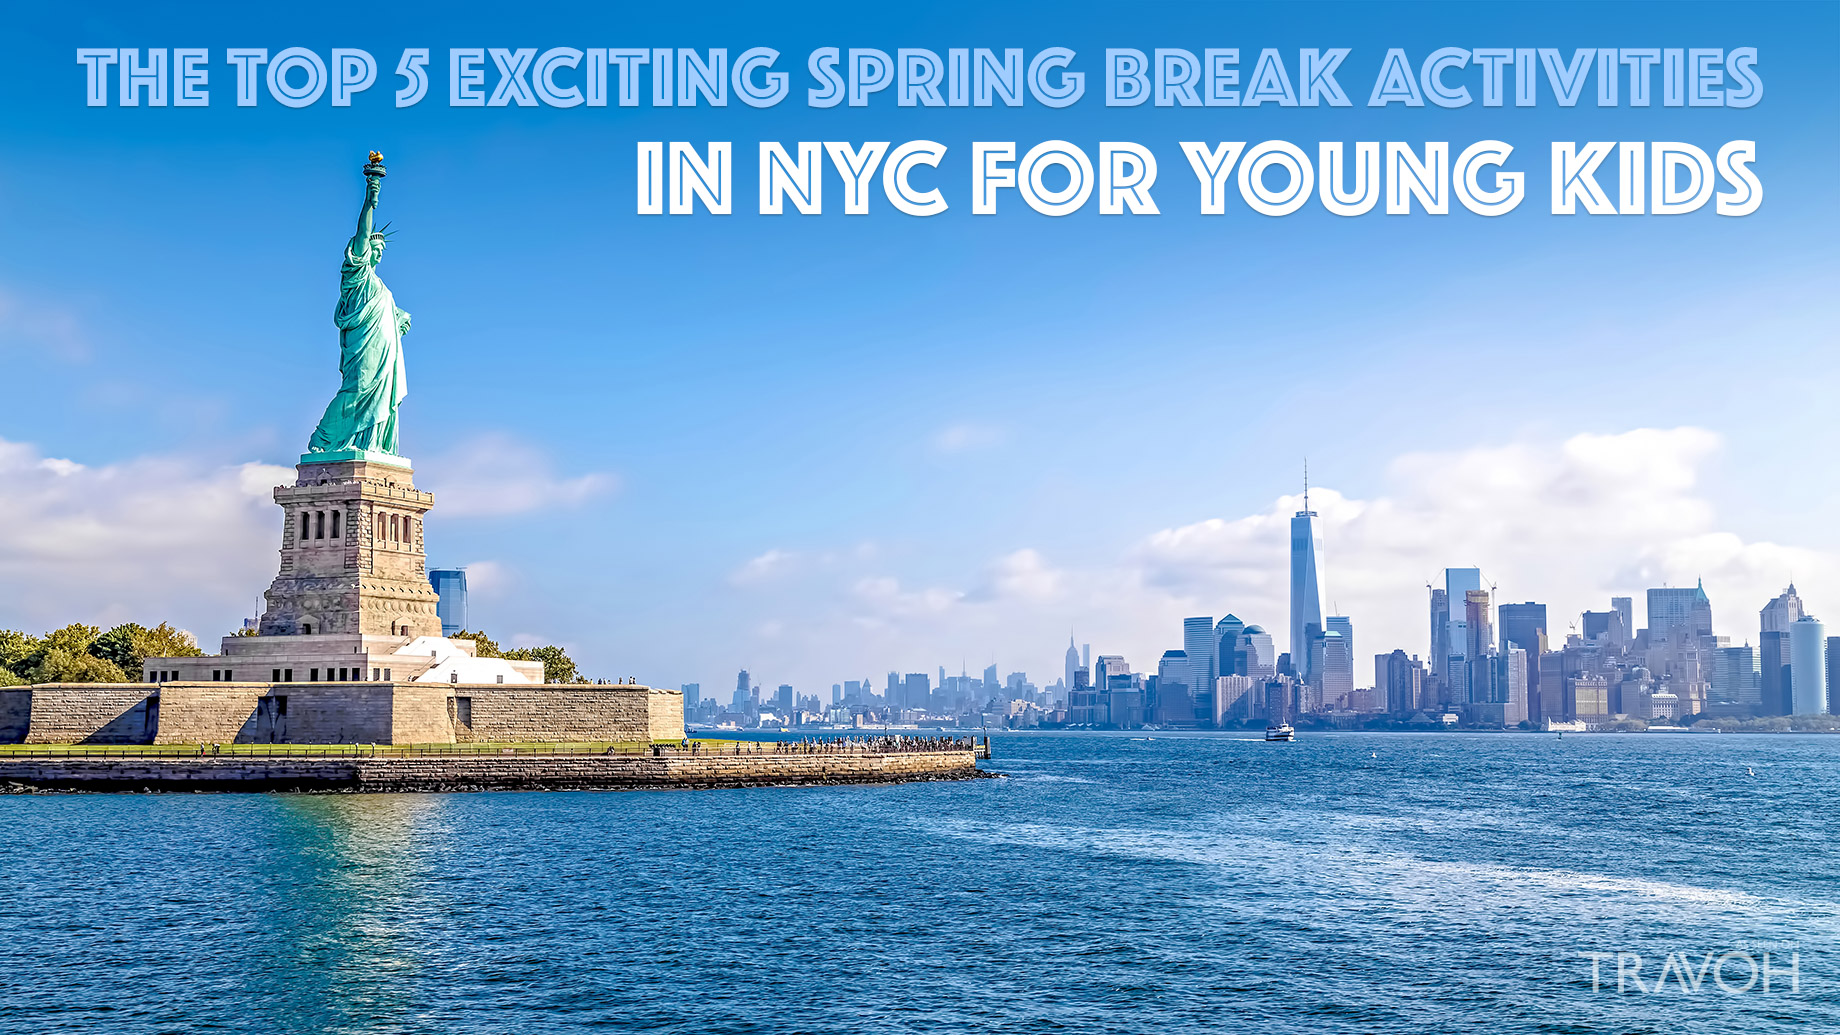 The Top 5 Exciting Spring Break Activities in NYC for Young Kids